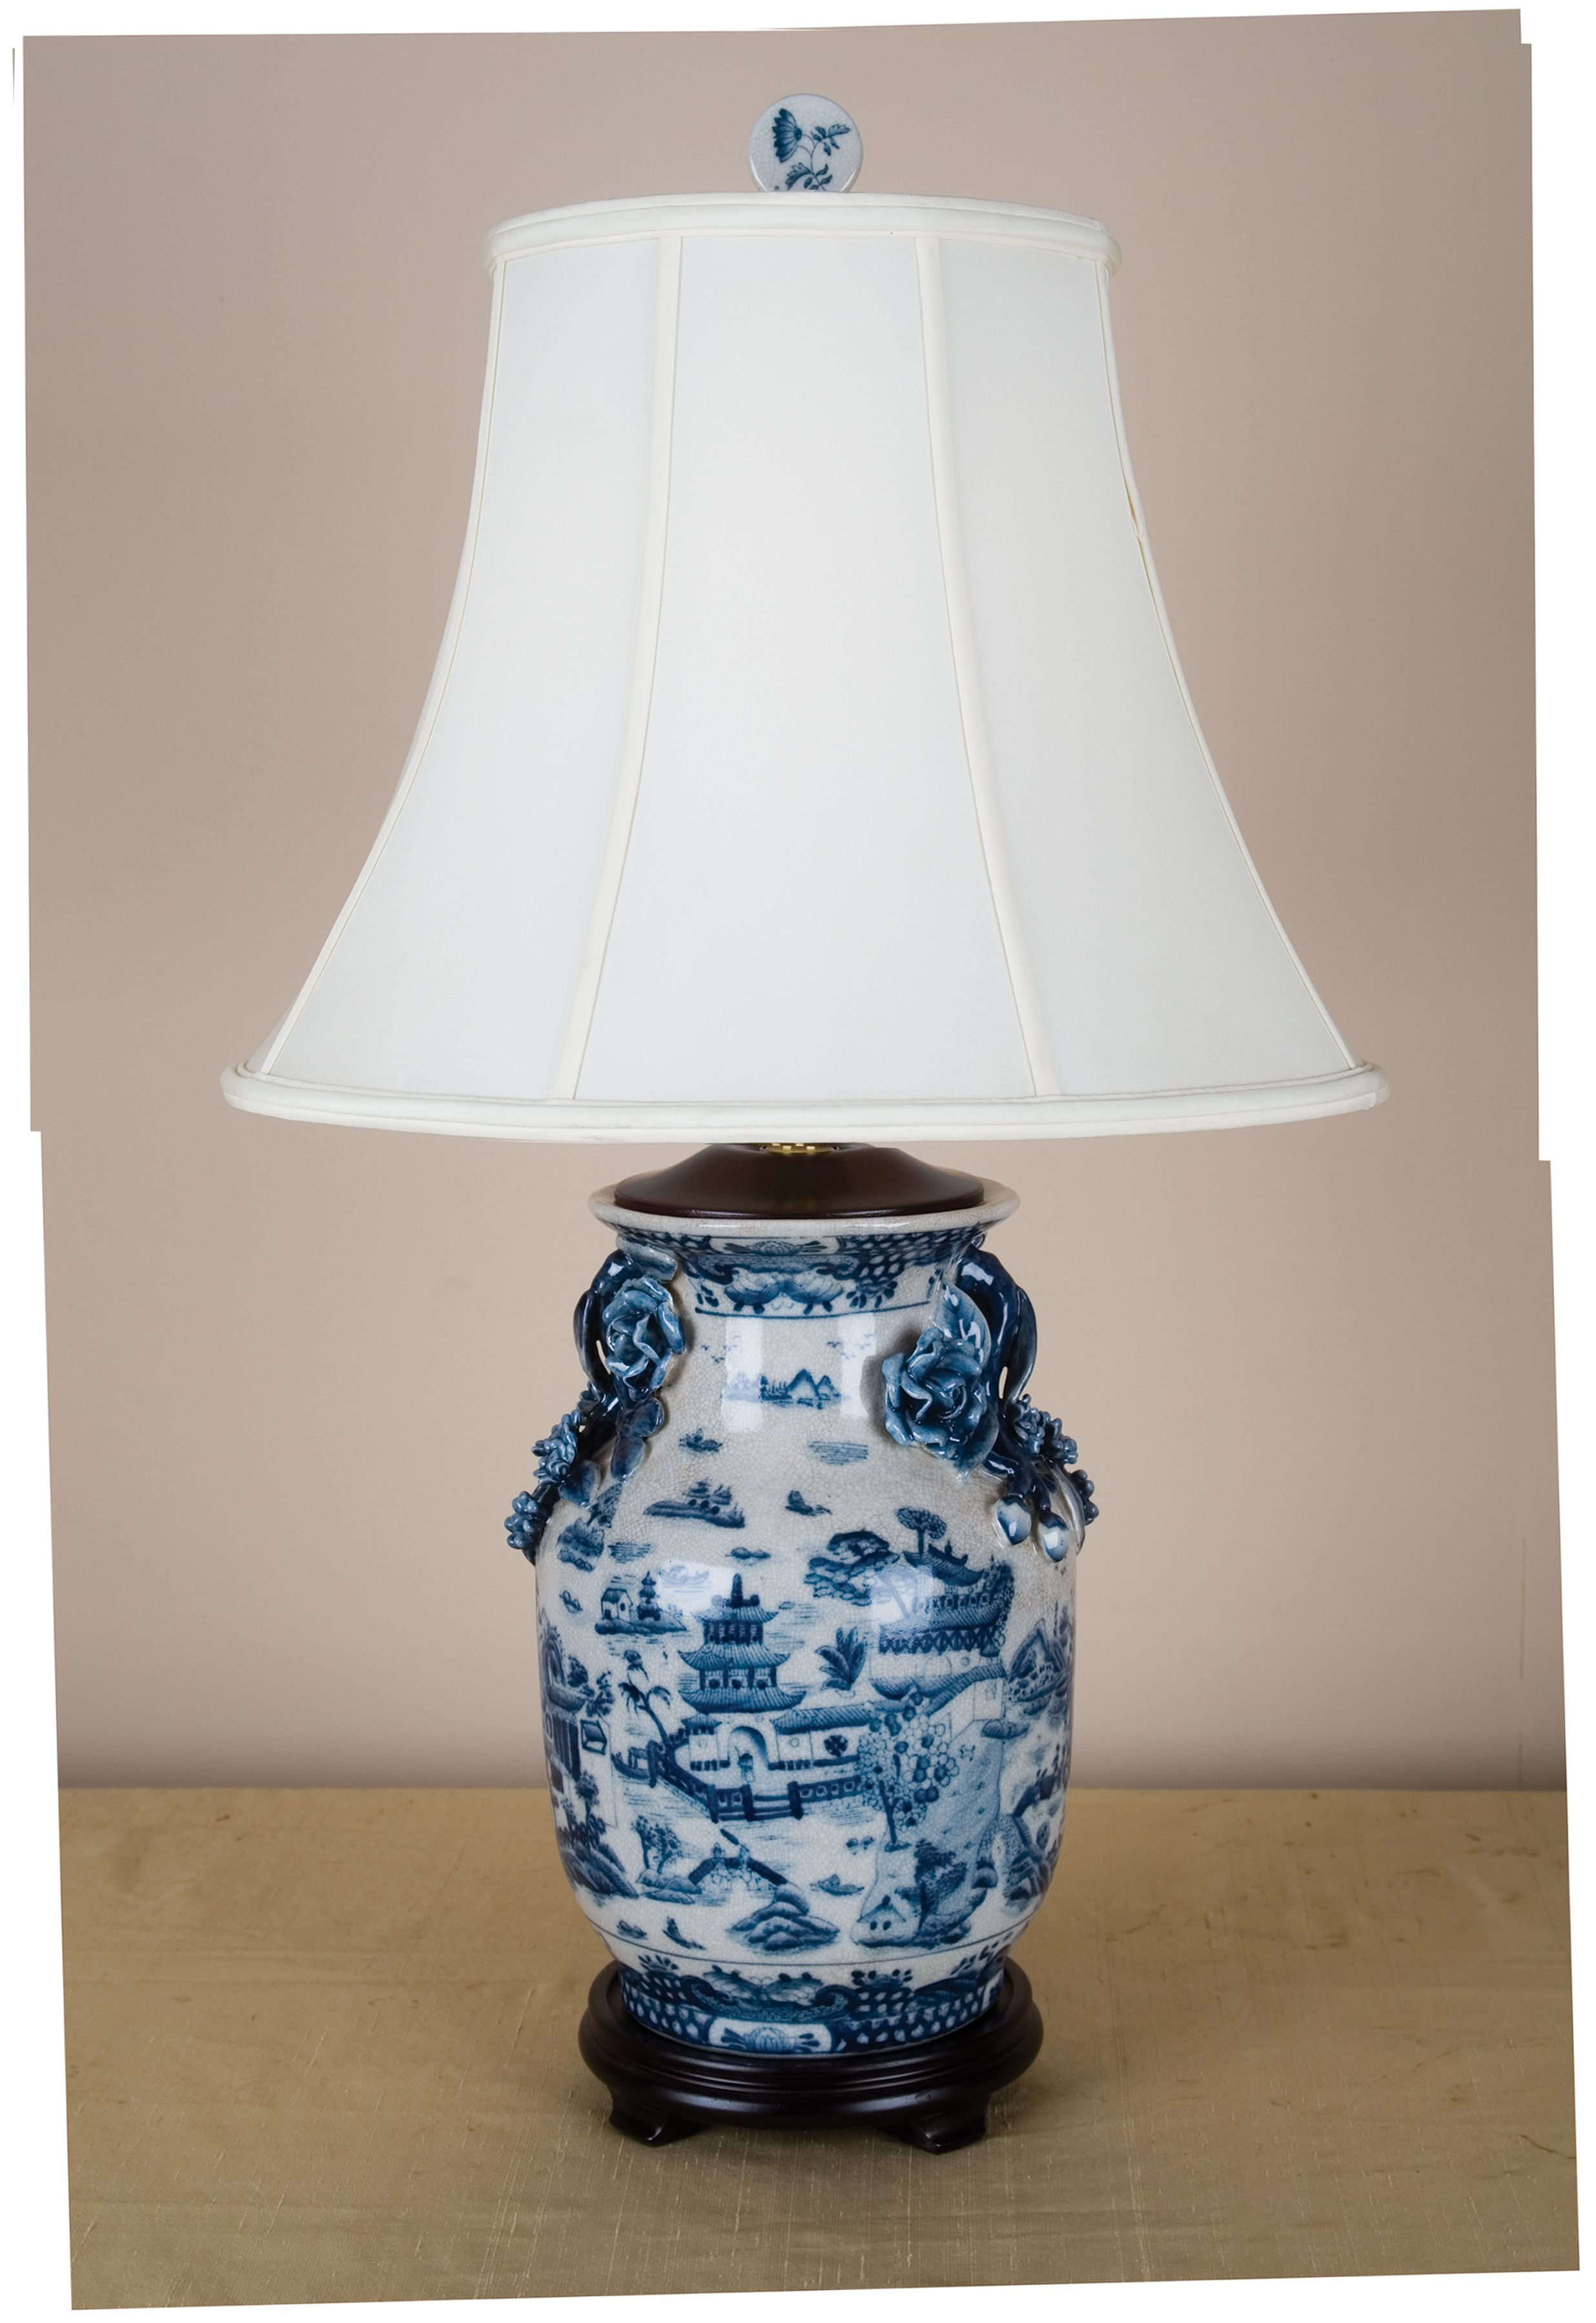 Blue Willow Porcelain Lamp Dress In Silk Shade All